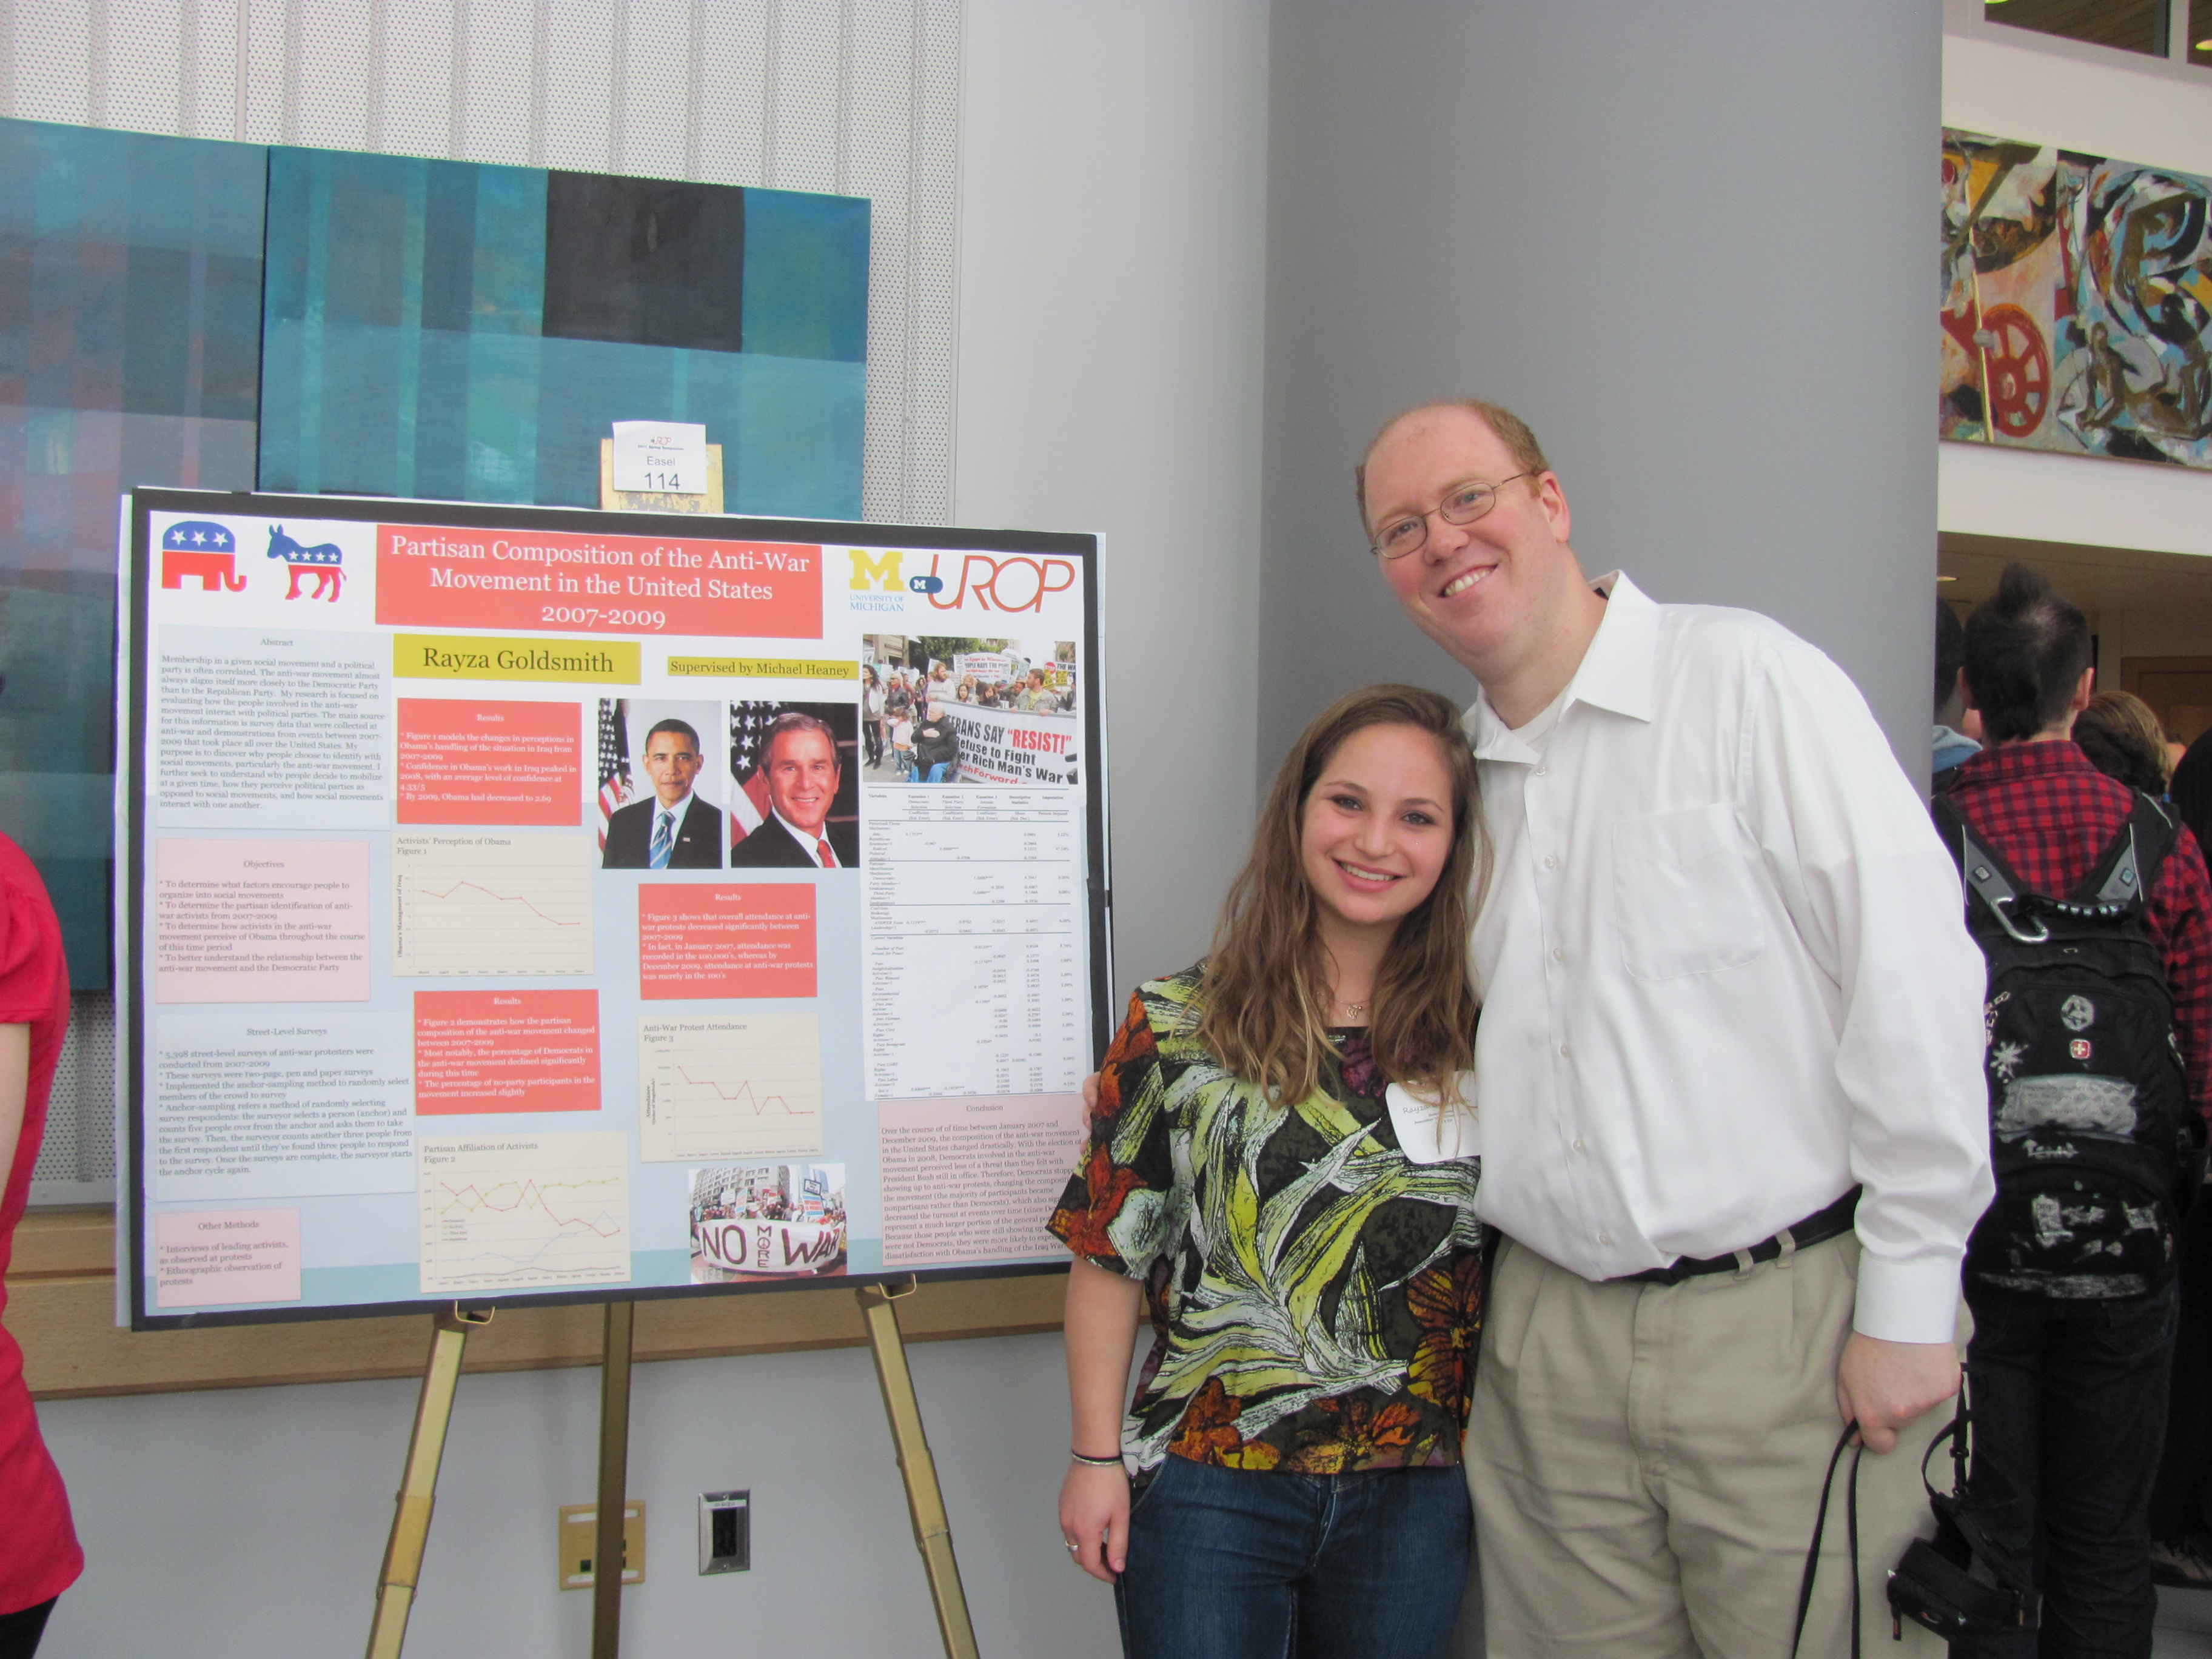 michael with urop student